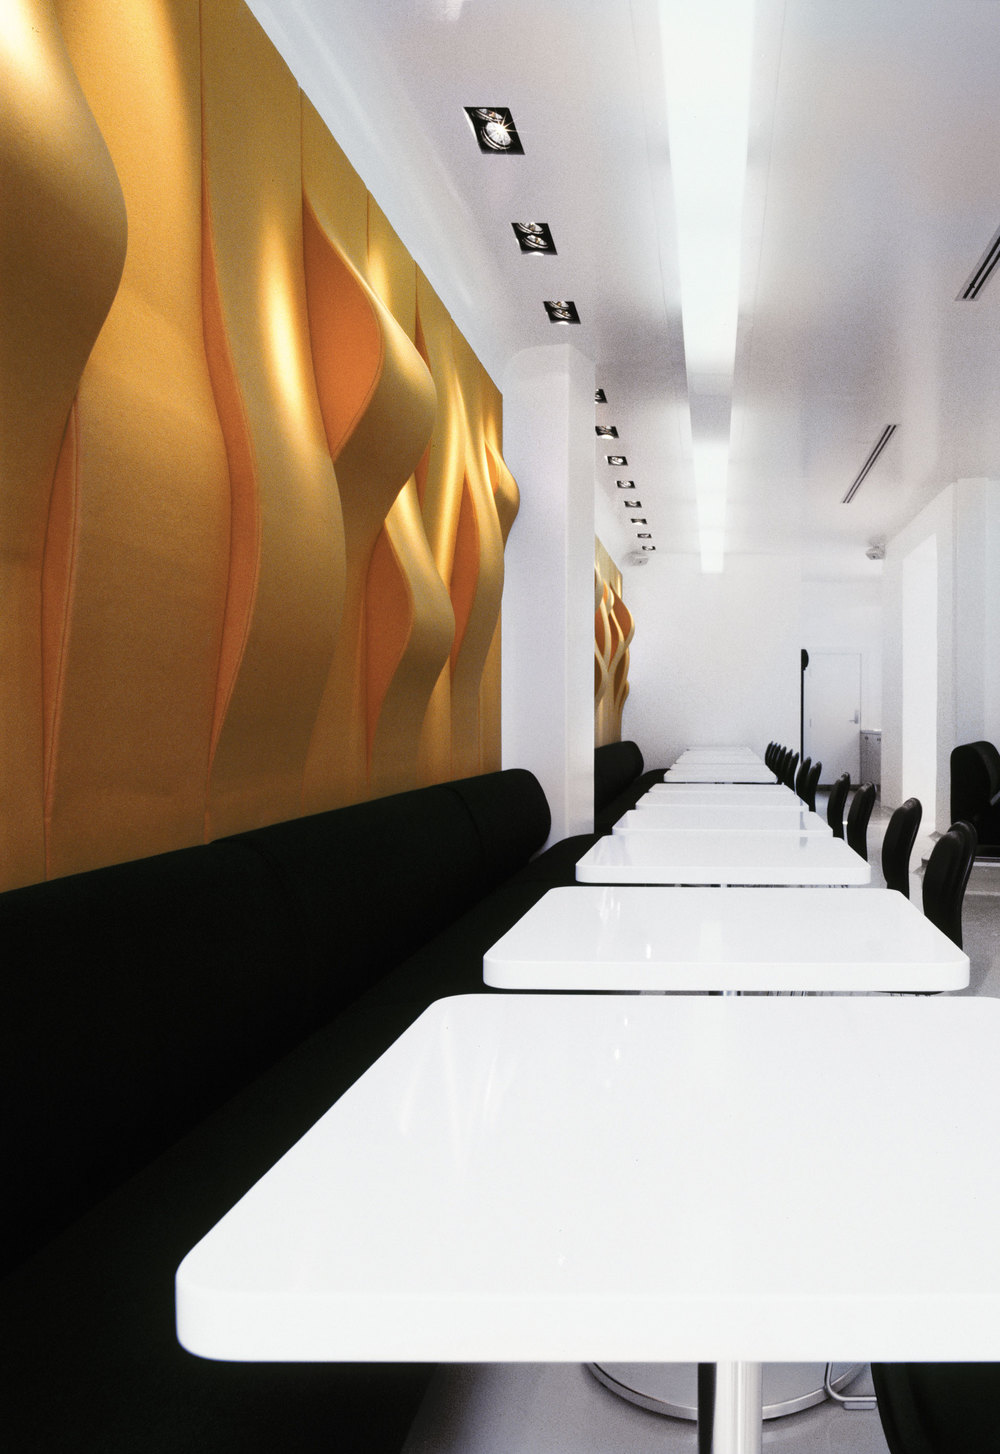 Table row with white tables and black seating next to a wall with wavy orange decoration